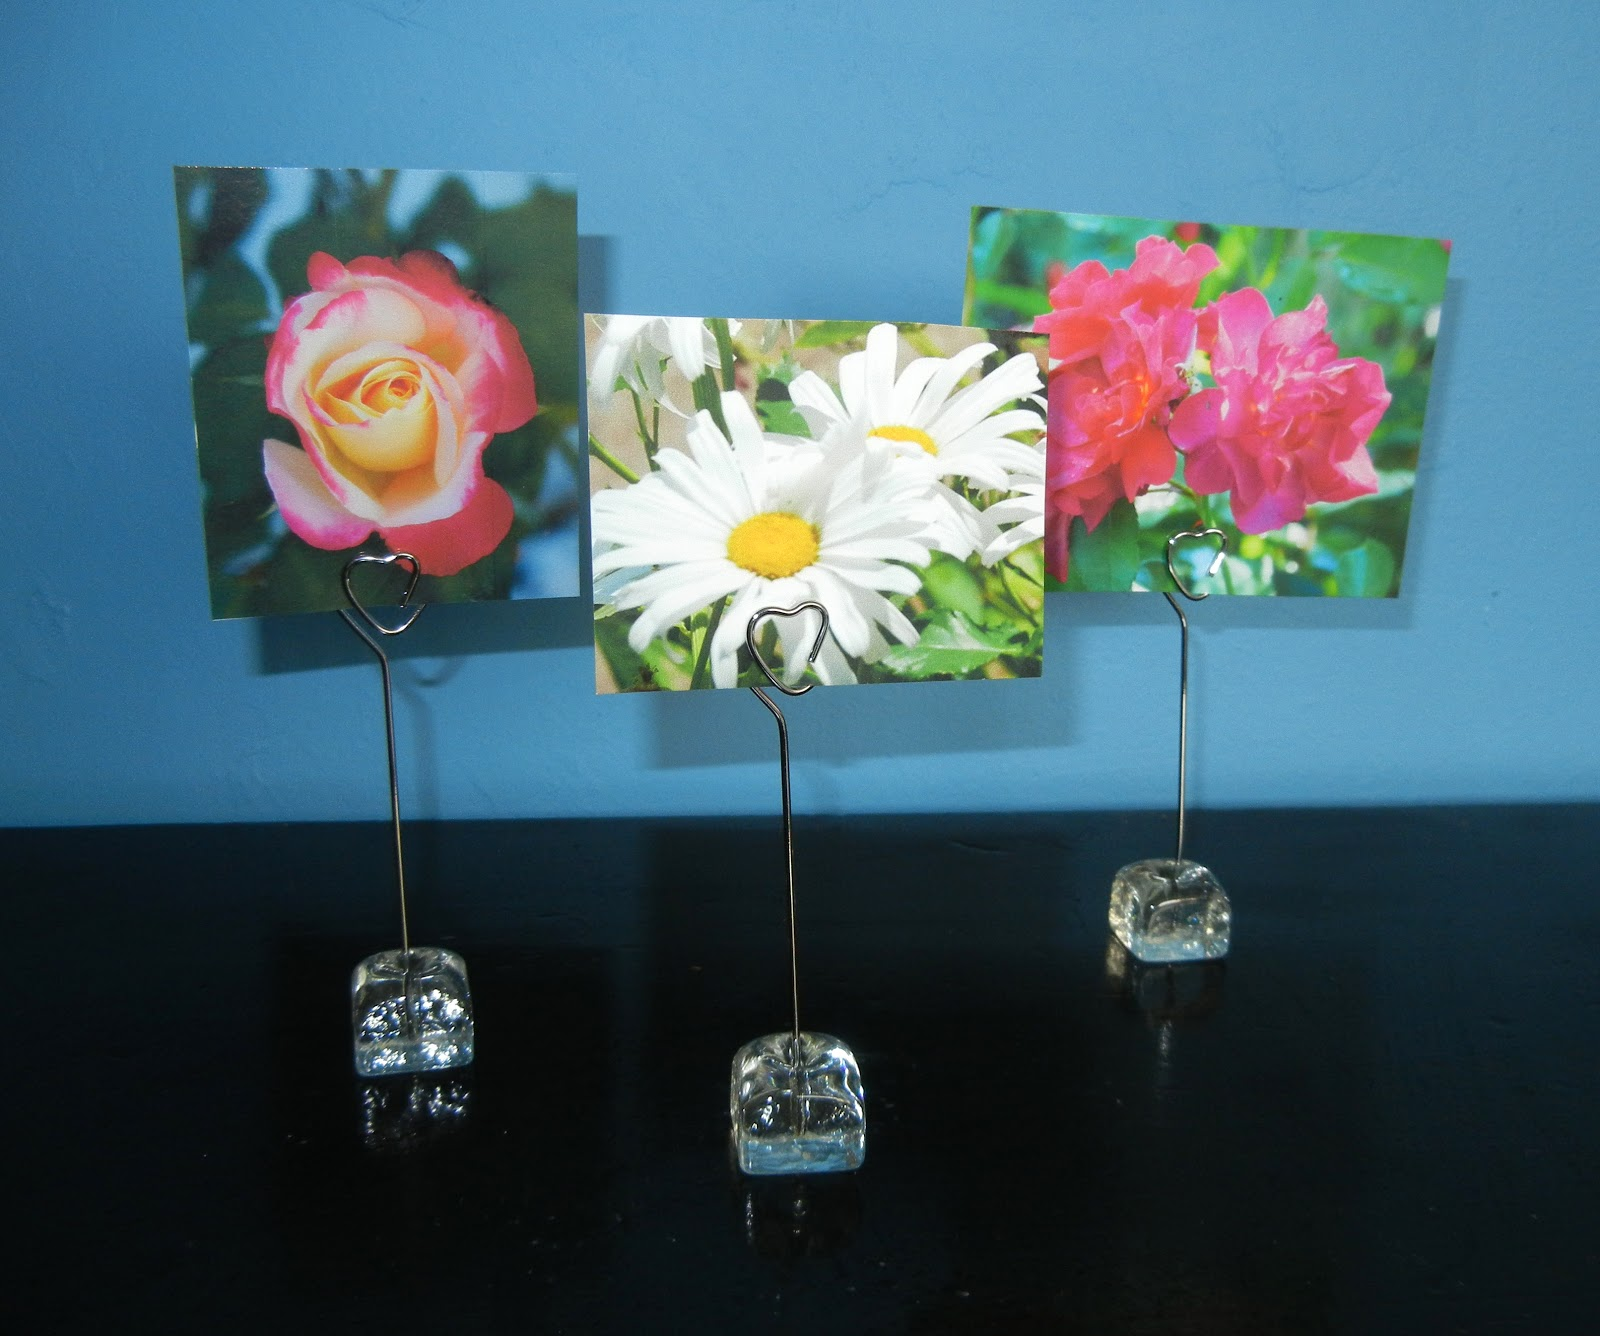 Displaying Photography: Photo Display Ideas: Displaying Photos Without Frames